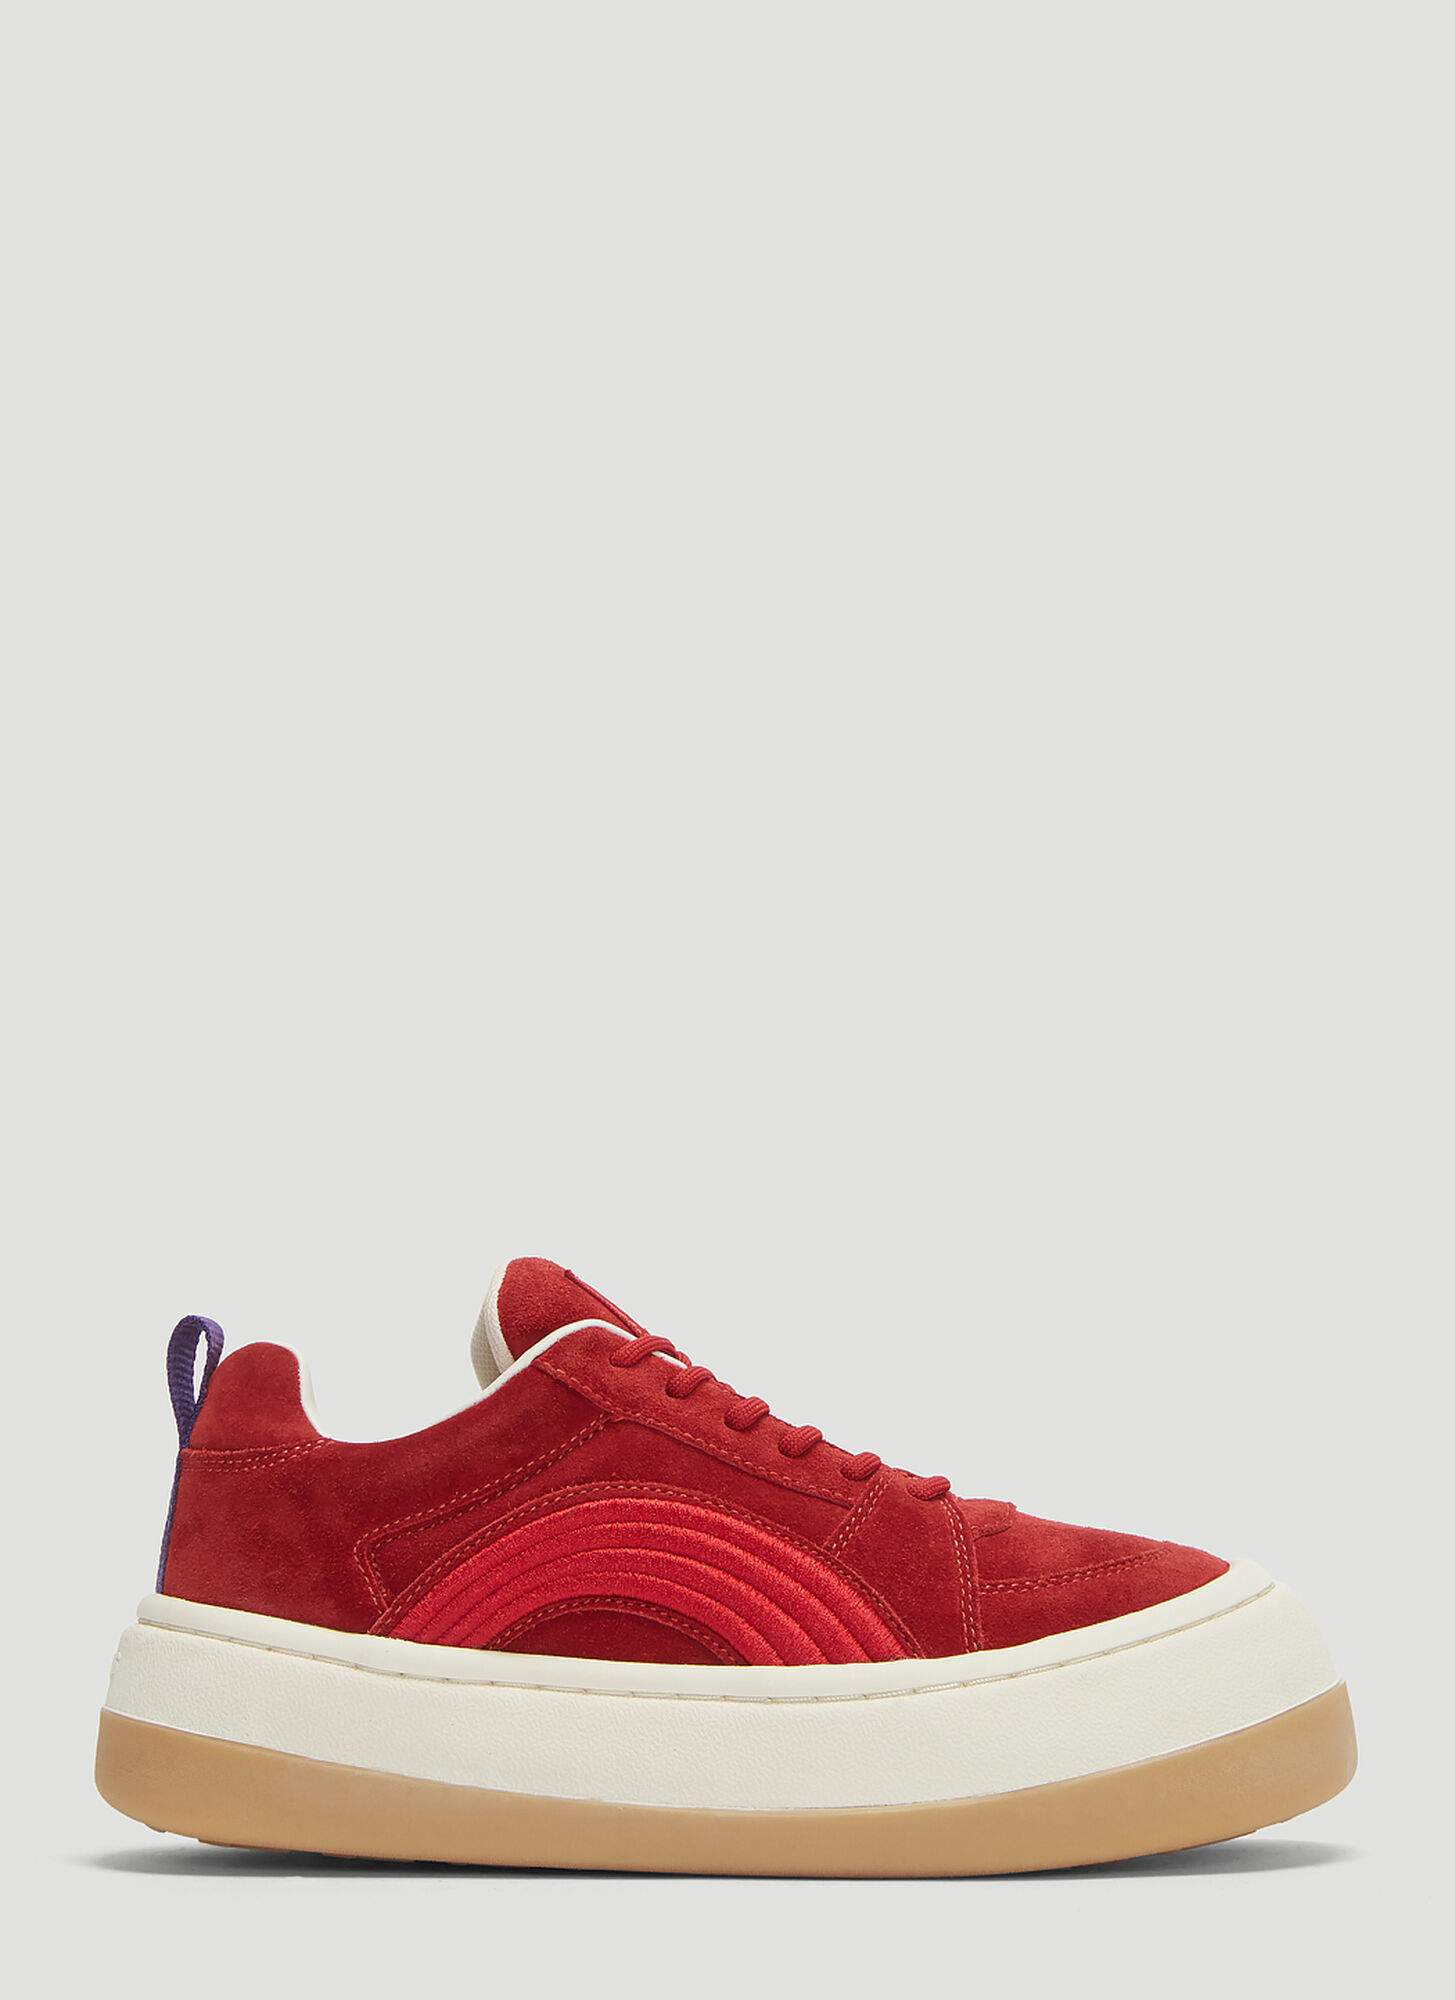 Eytys Sonic Sneakers in Red